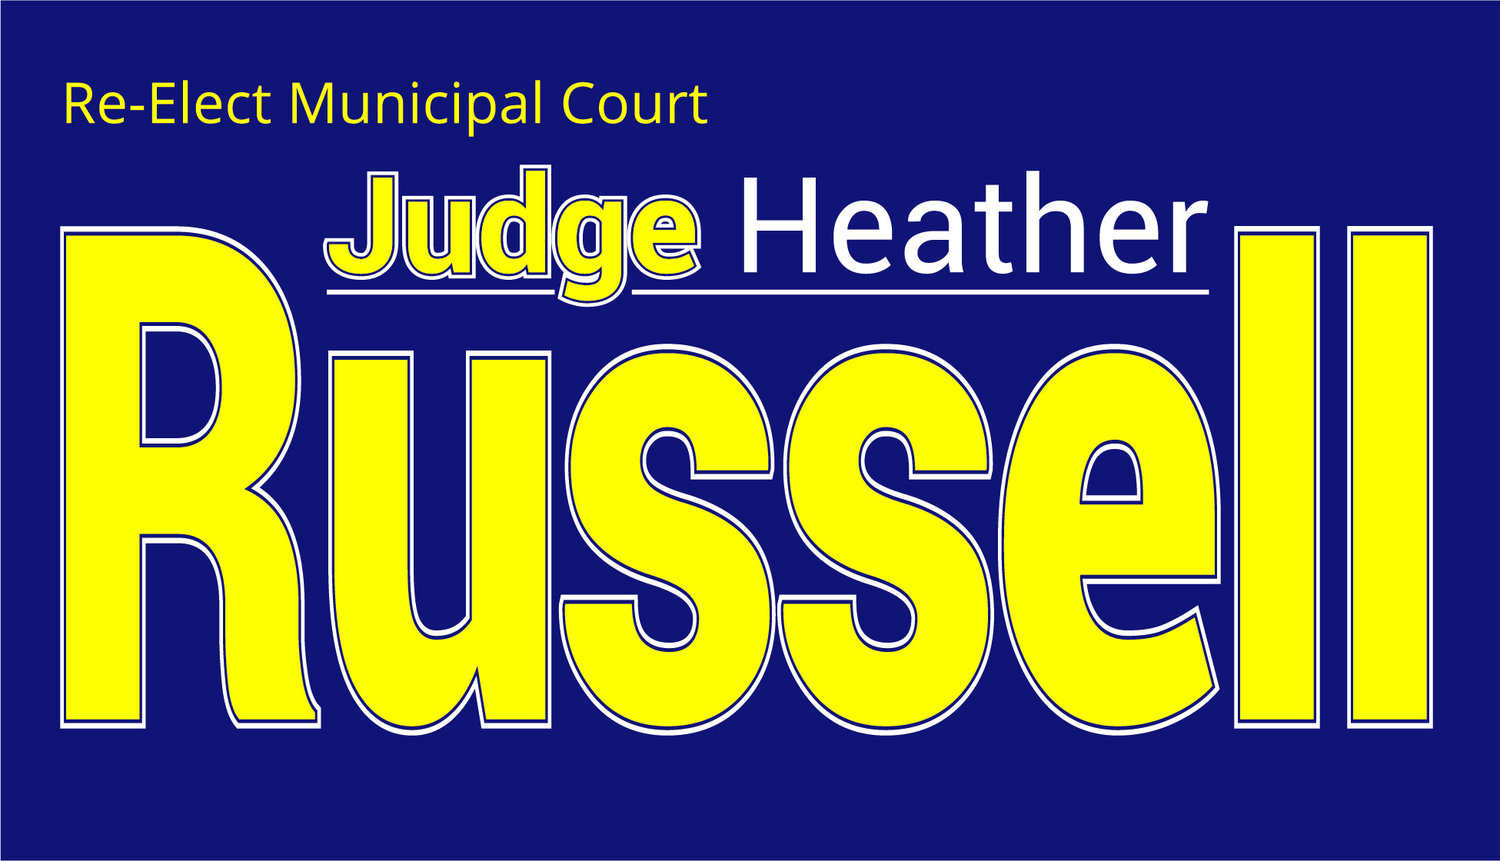 Re-Elect Judge Heather Russell